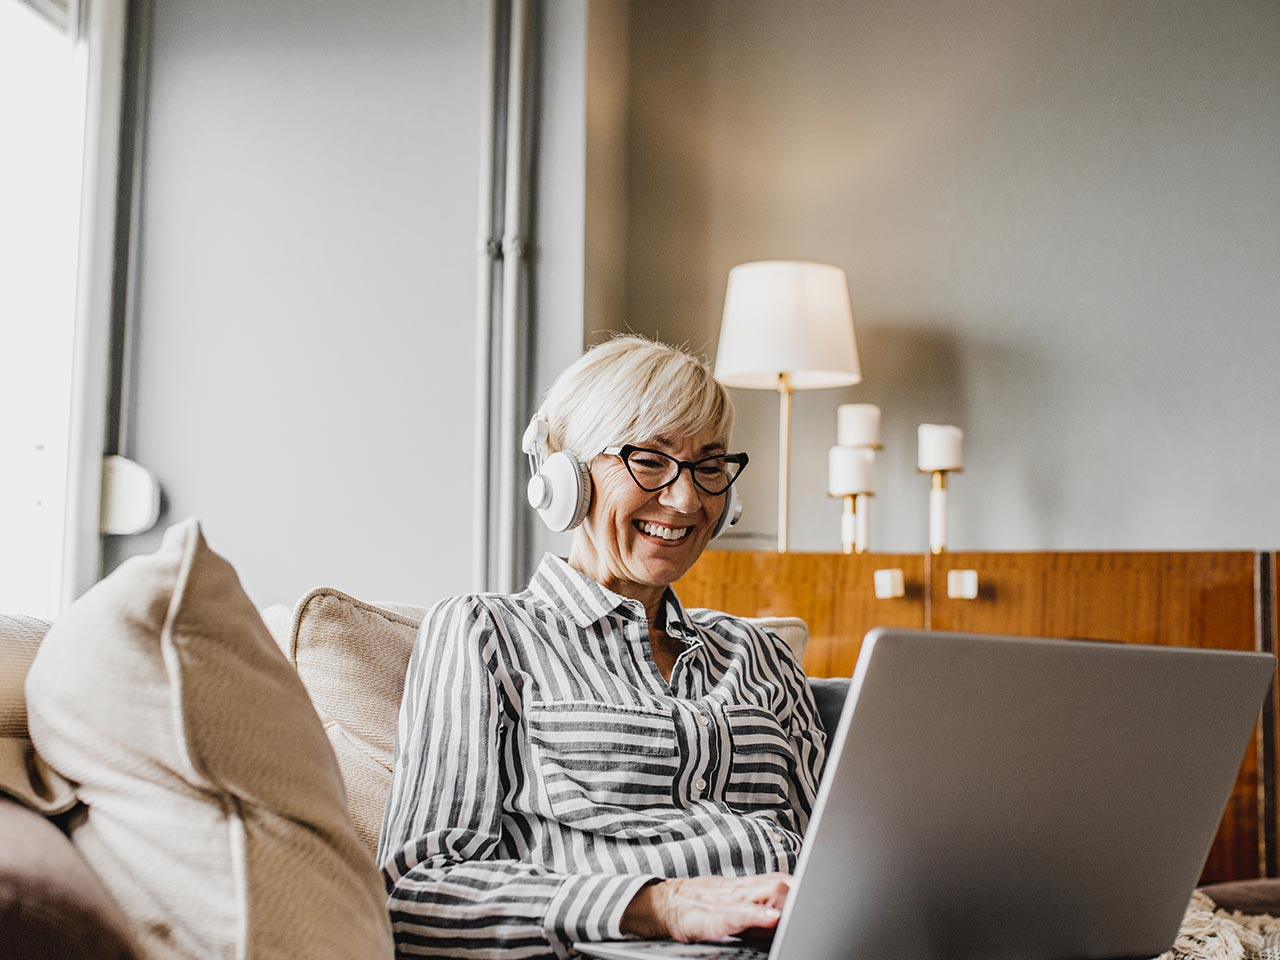 Contact center agent working from home office